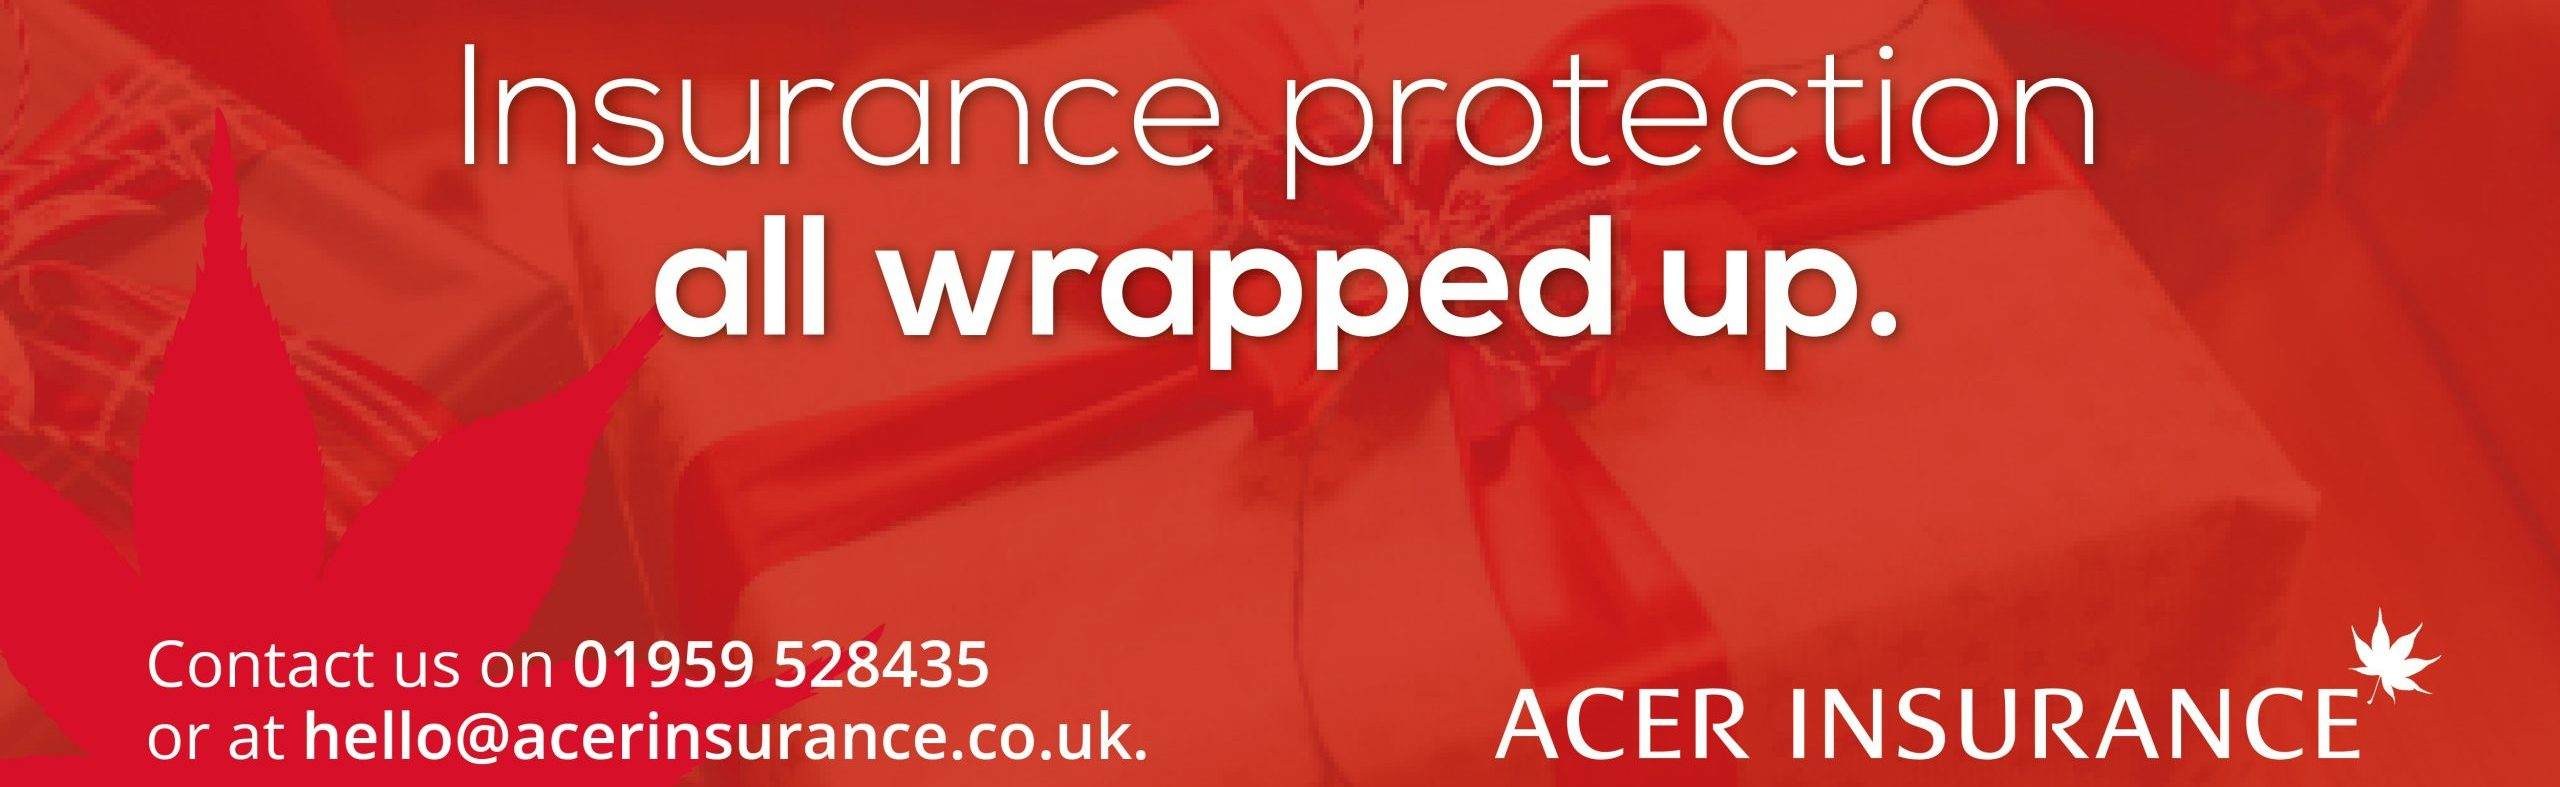 Insurance protection all wrapped up